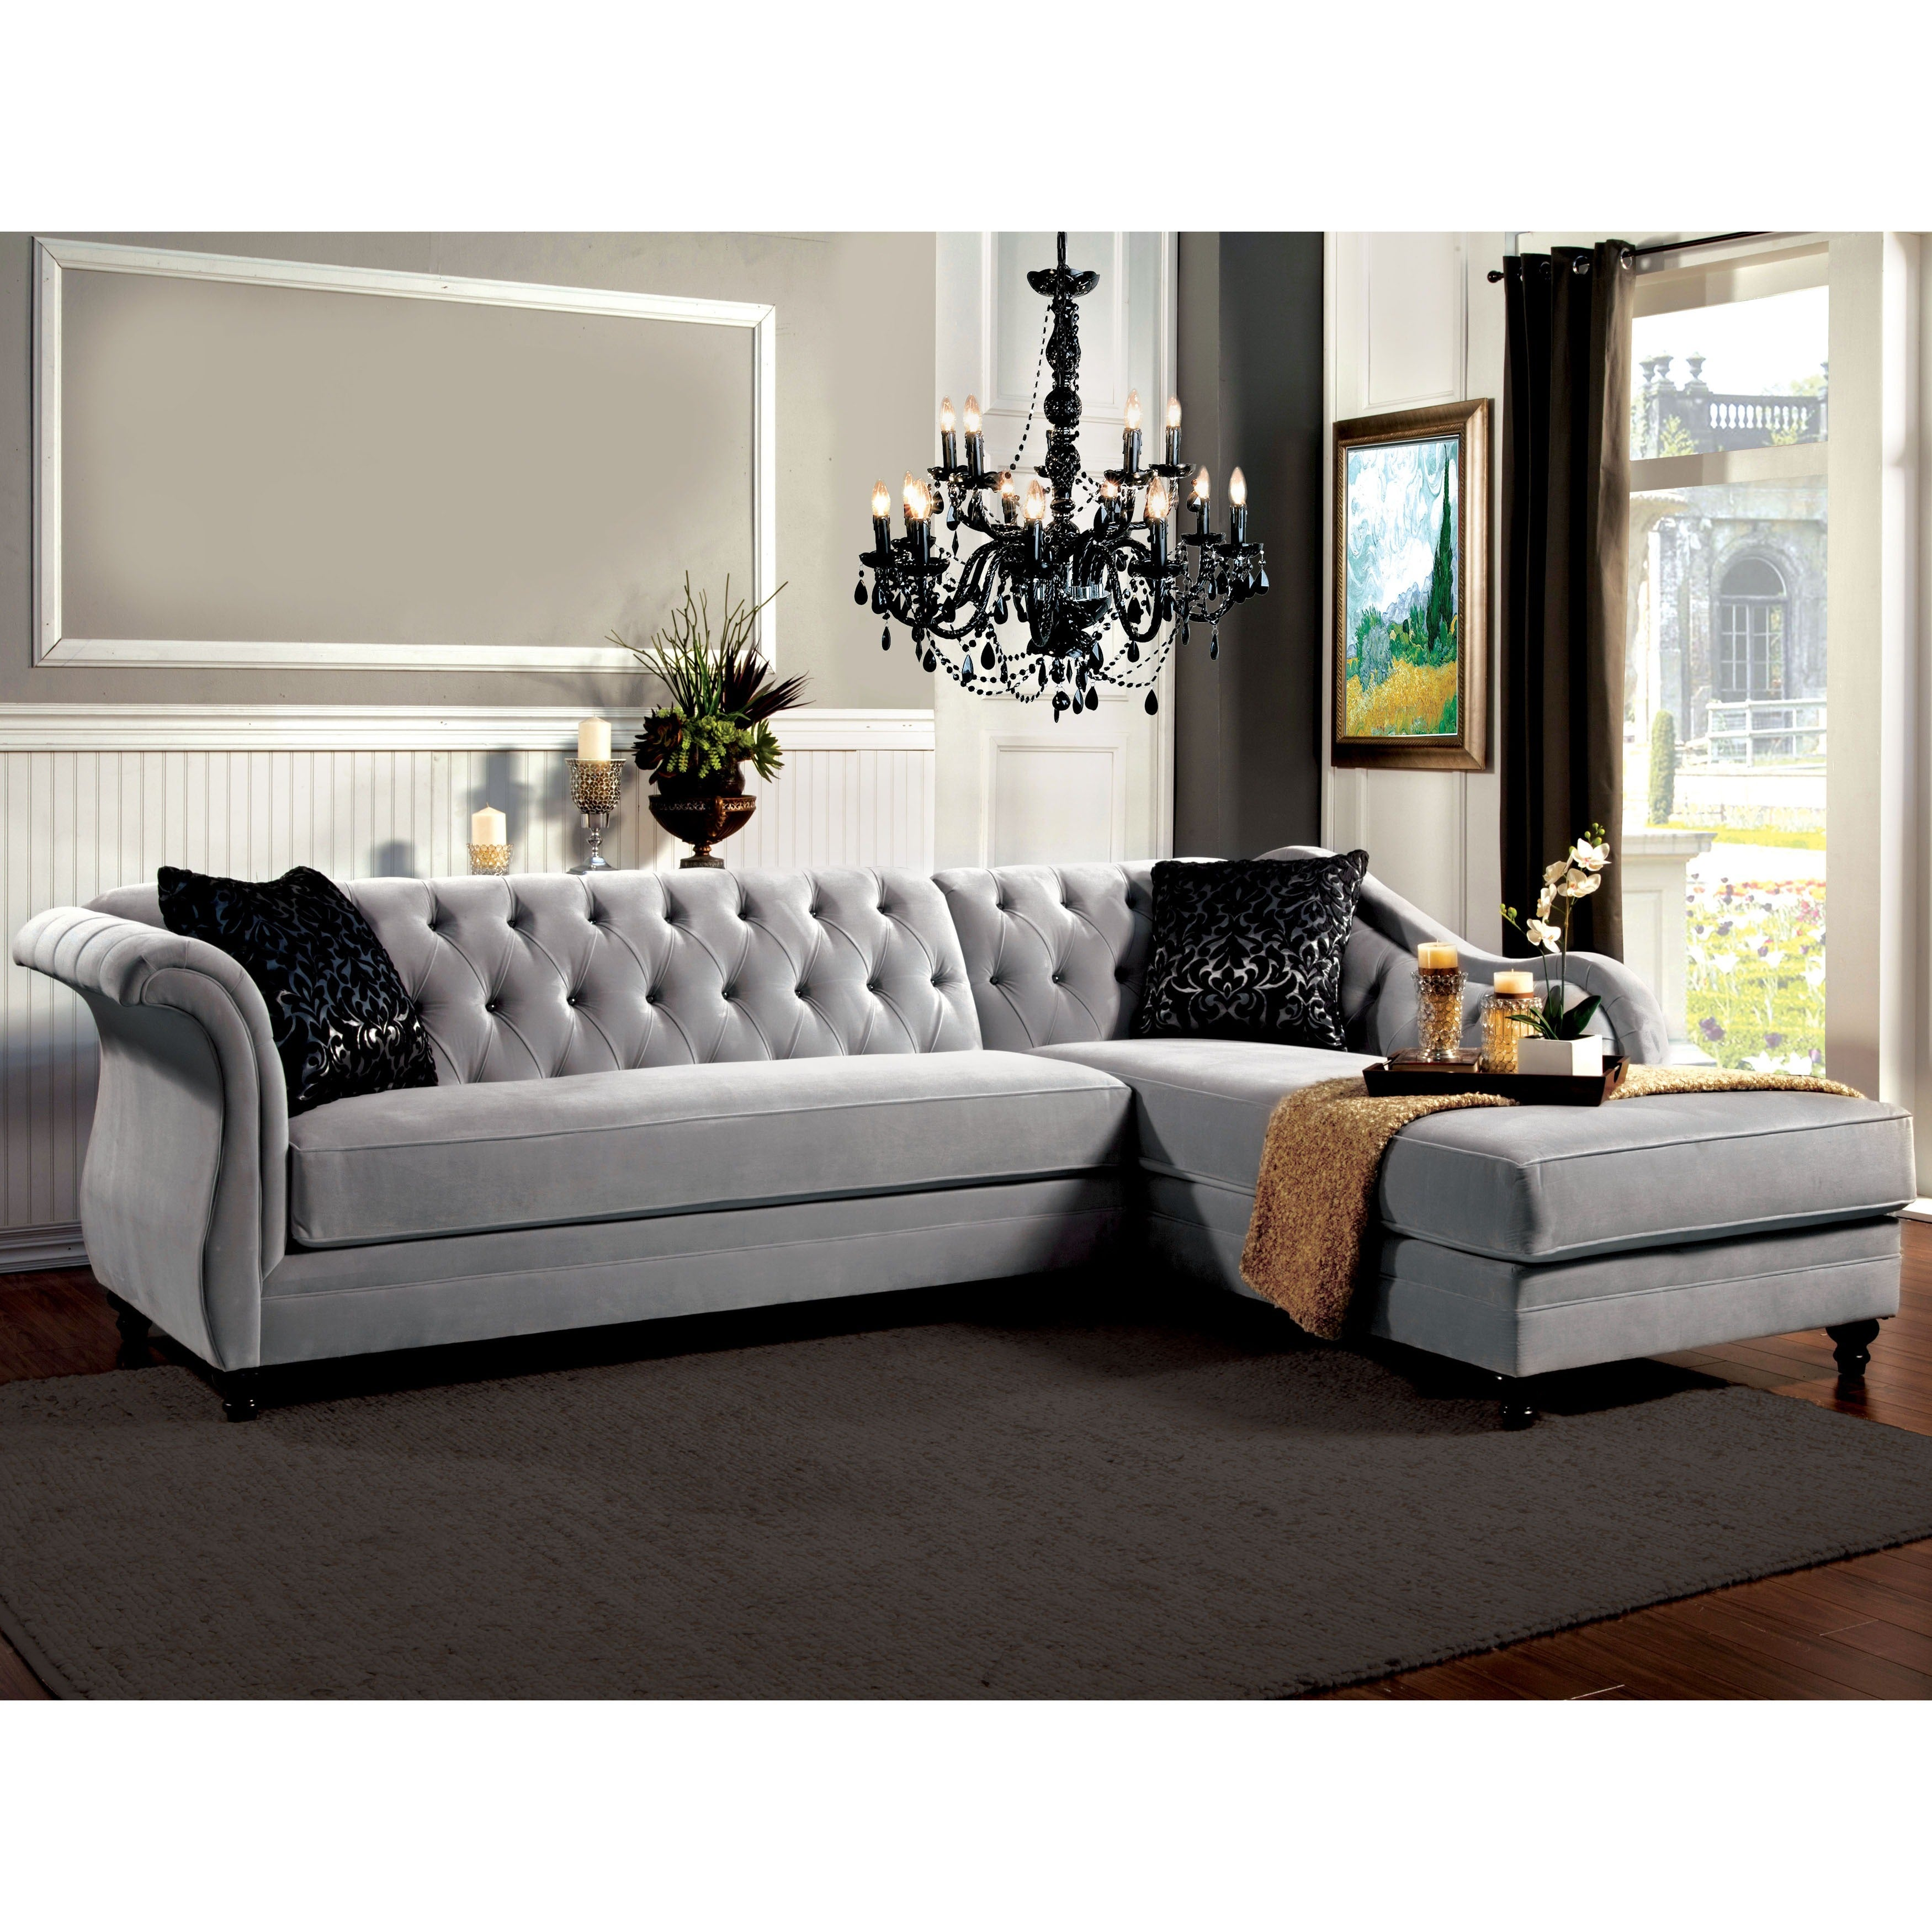 Furniture of America Elegant Aristocrat Tufted Sectional Free